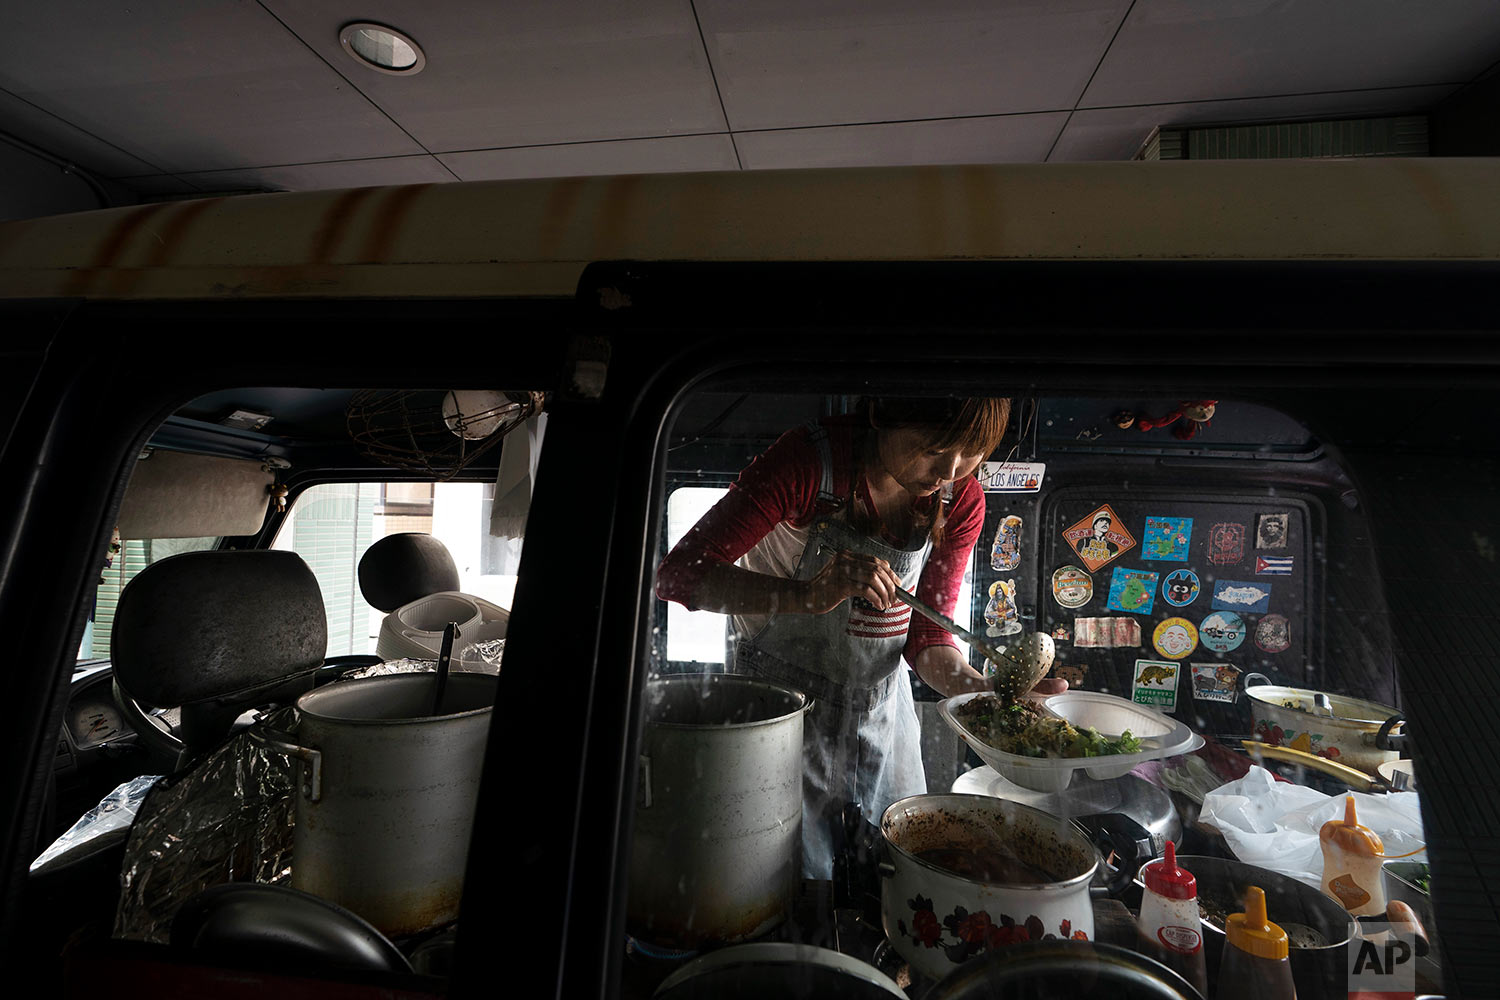 Mijo Nakamura, 38, works in her tiny food truck named Charming Restaurant in the Shibuya district of Tokyo, May 29, 2019. Serving fusion Asian food, Nakamura's food truck only opens for lunch. (AP Photo/Jae C. Hong)